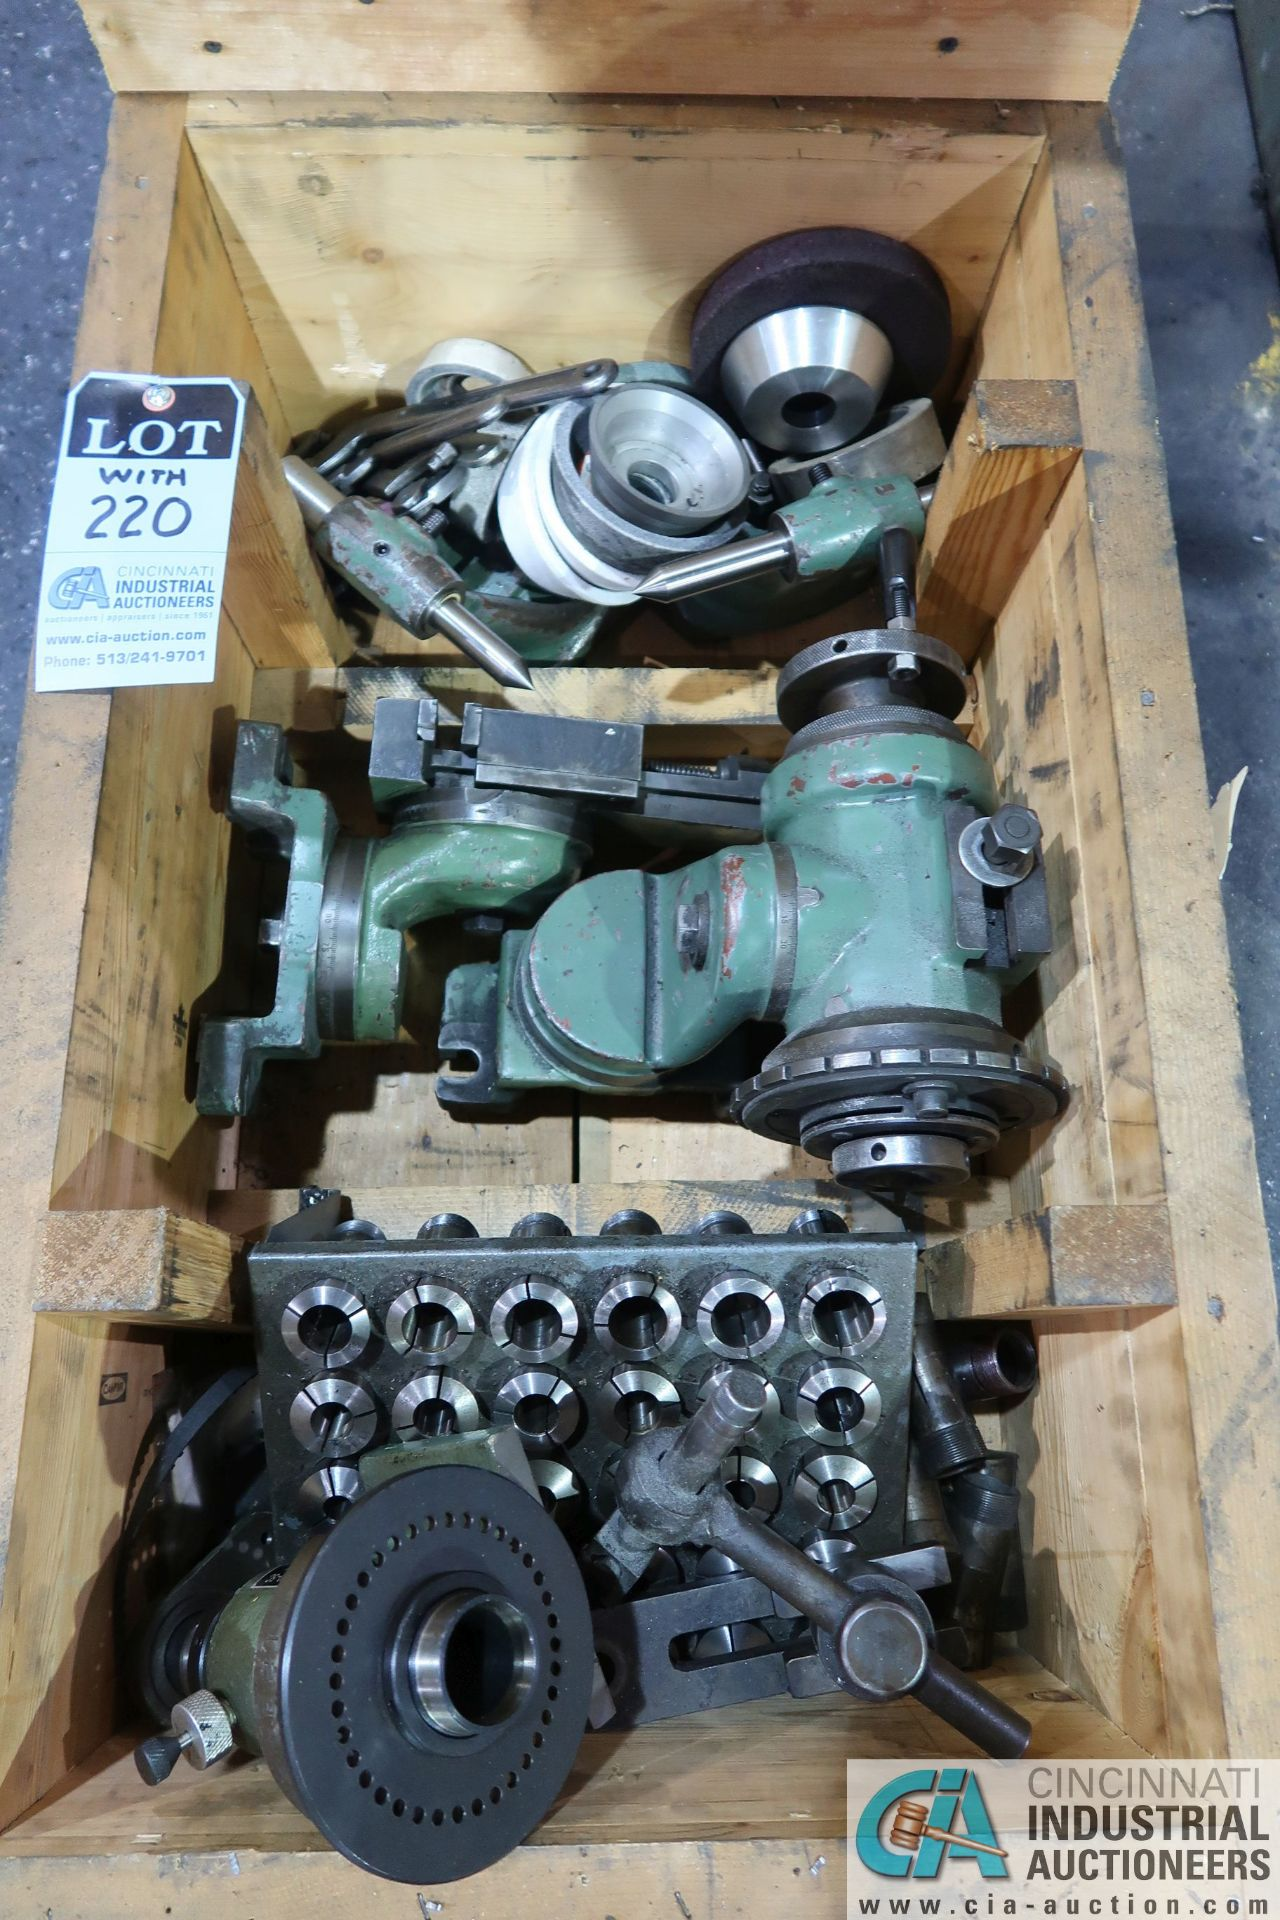 CINCINNATI TYPE MT TOOL GRINDER; S/N 1D2F1ABF-15, WITH (1) WOOD CRATE MISCELLANEOUS FIXTURES (NEW - Image 11 of 11